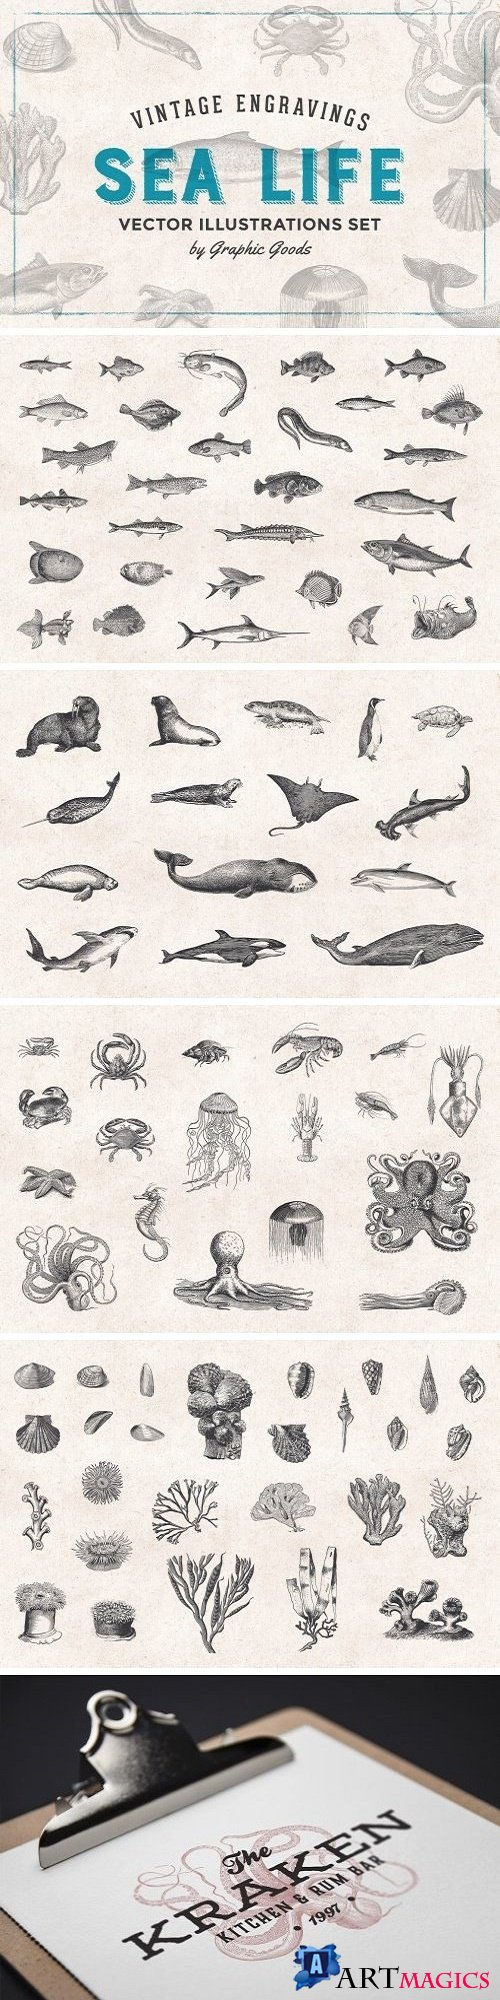 Fishes & Sea Life Engravings Set - 1192599